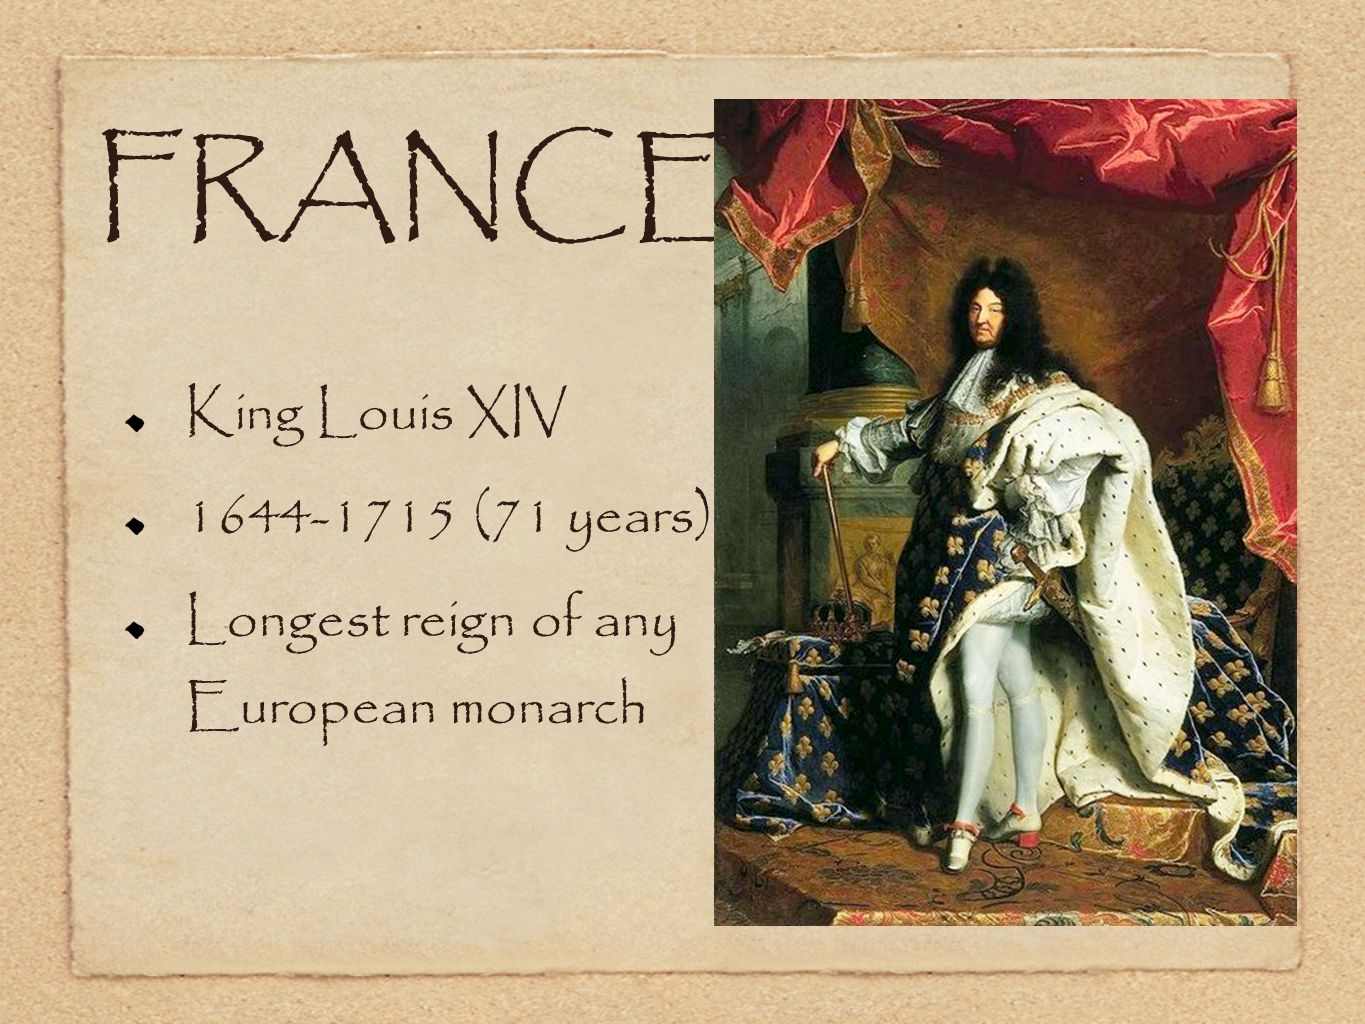 FRANCE King Louis XIV 1644-1715 (71 years) Longest reign of any European monarch